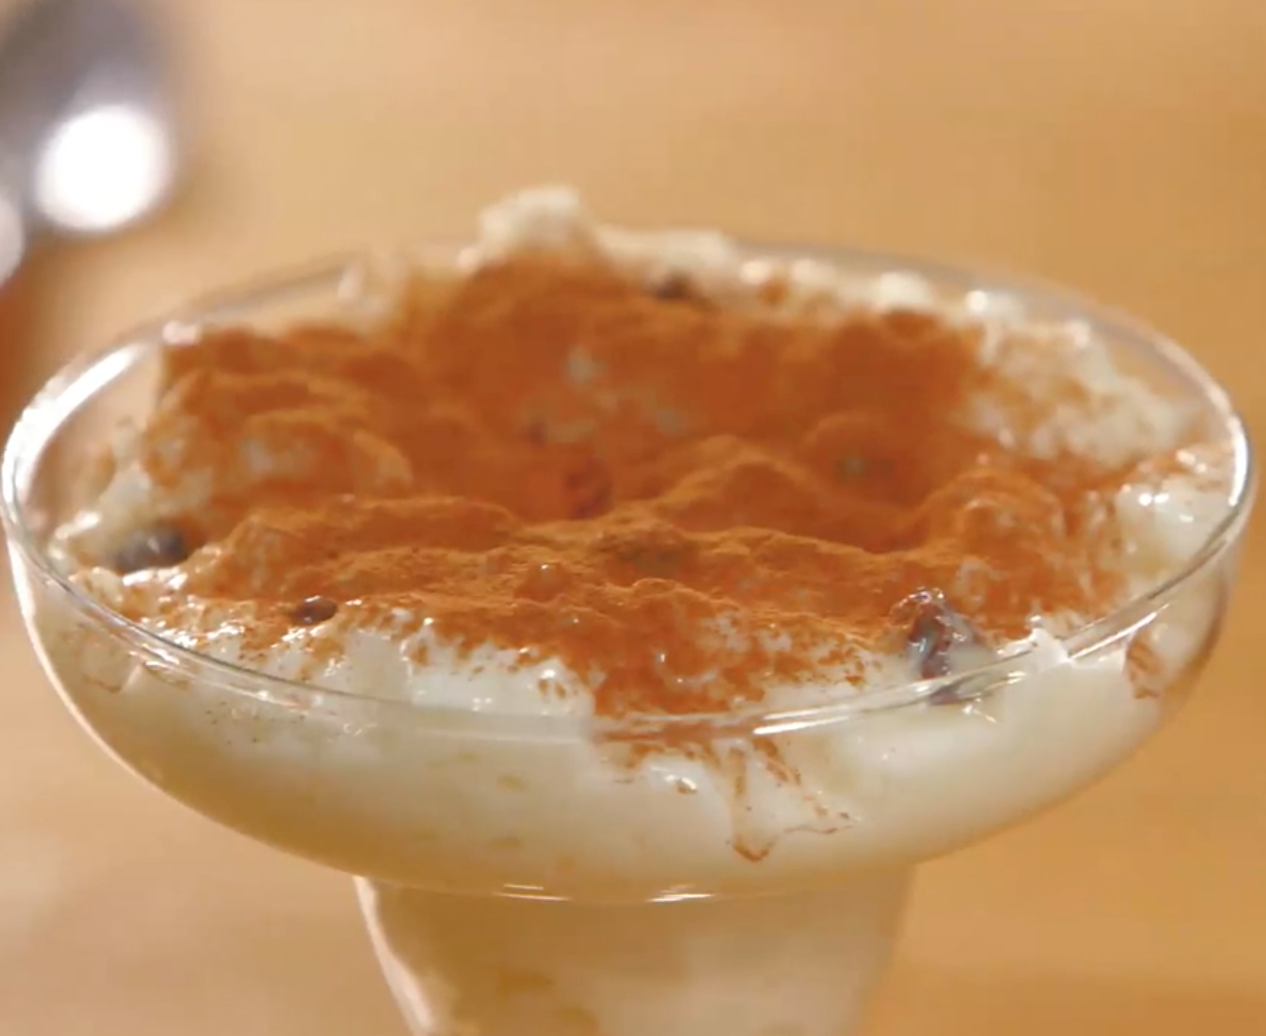 George_Hirsch_Lifestyle_Rice_Pudding_103 copy.png